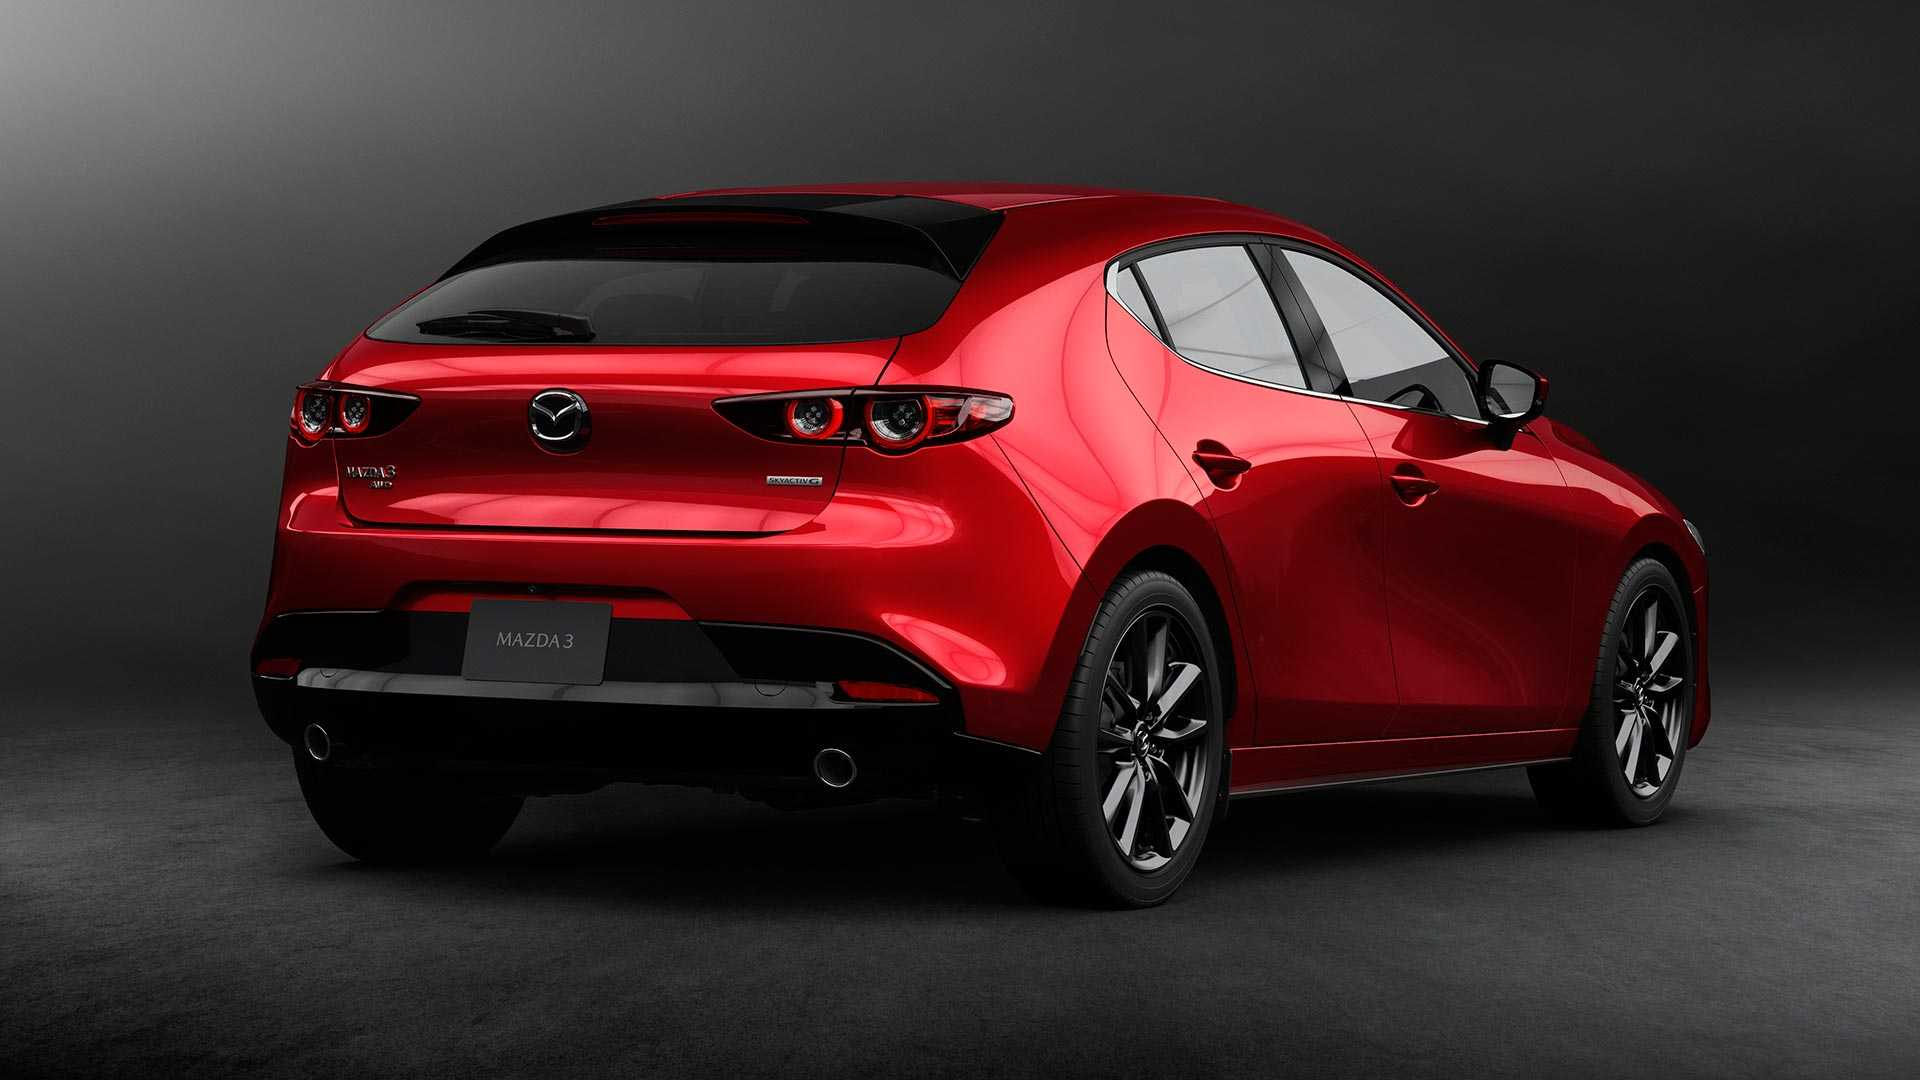 cuoc-doi-dau-gay-can-mazda-mazda3-2019-vs-toyota-corolla-2020